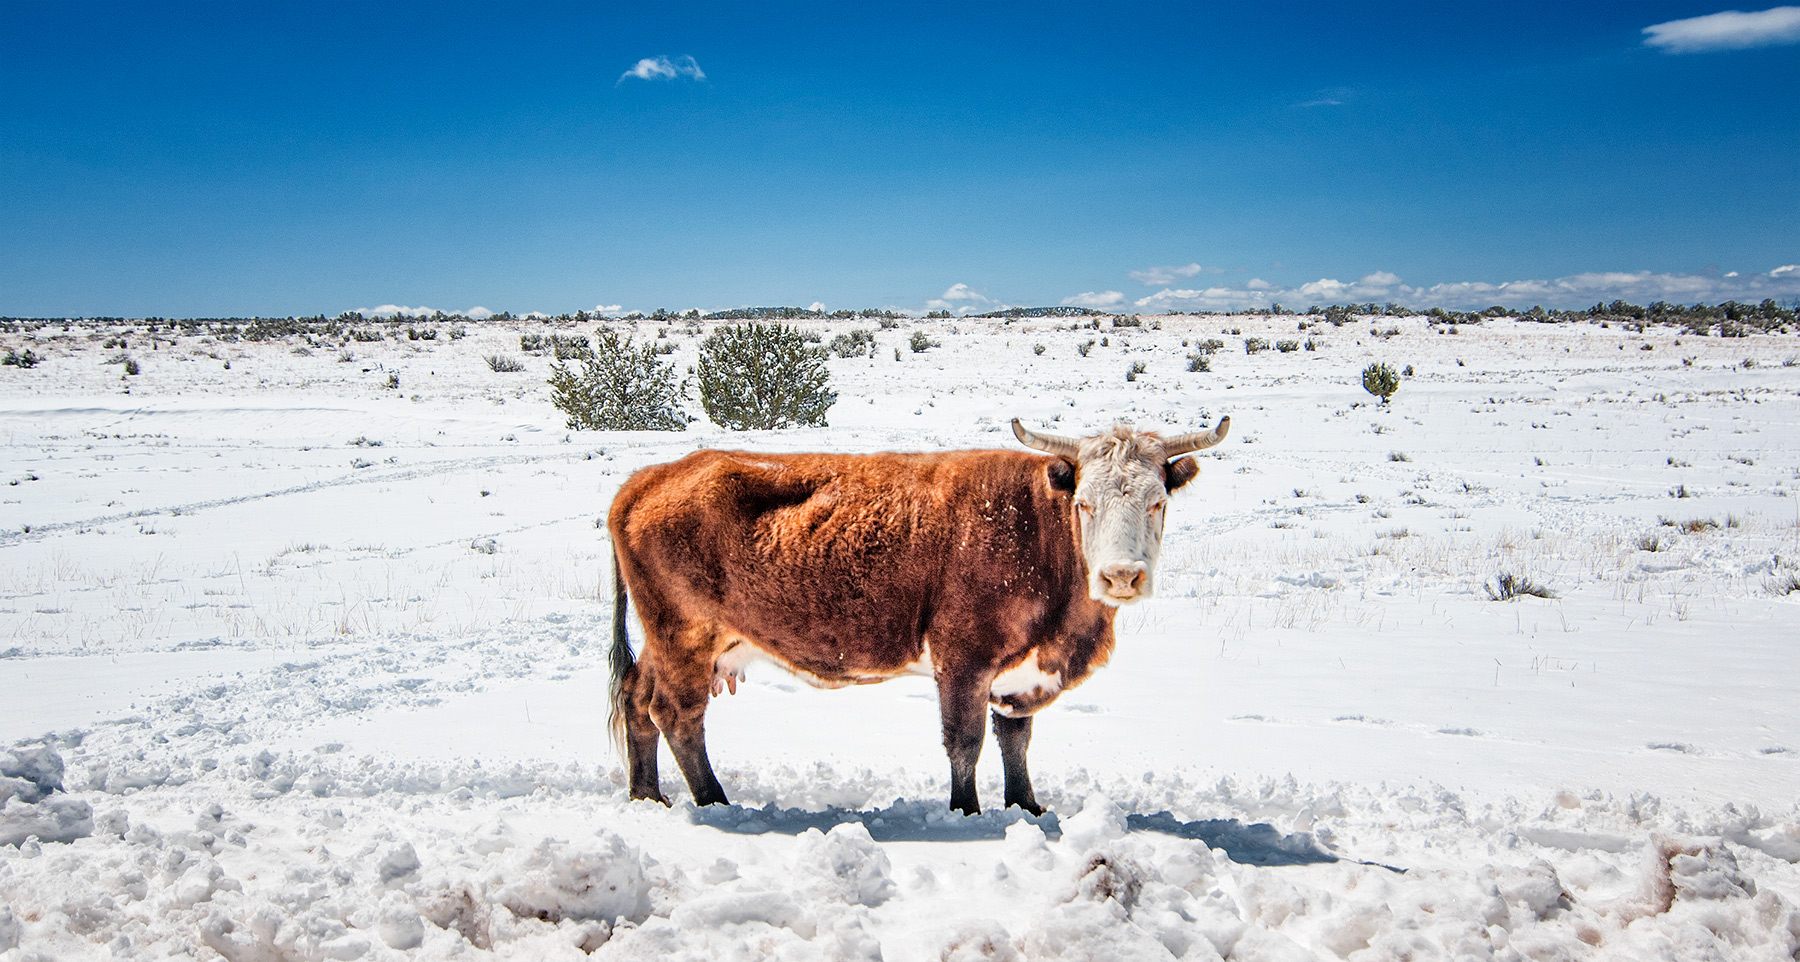 Cow Winter arizona snow driving remote